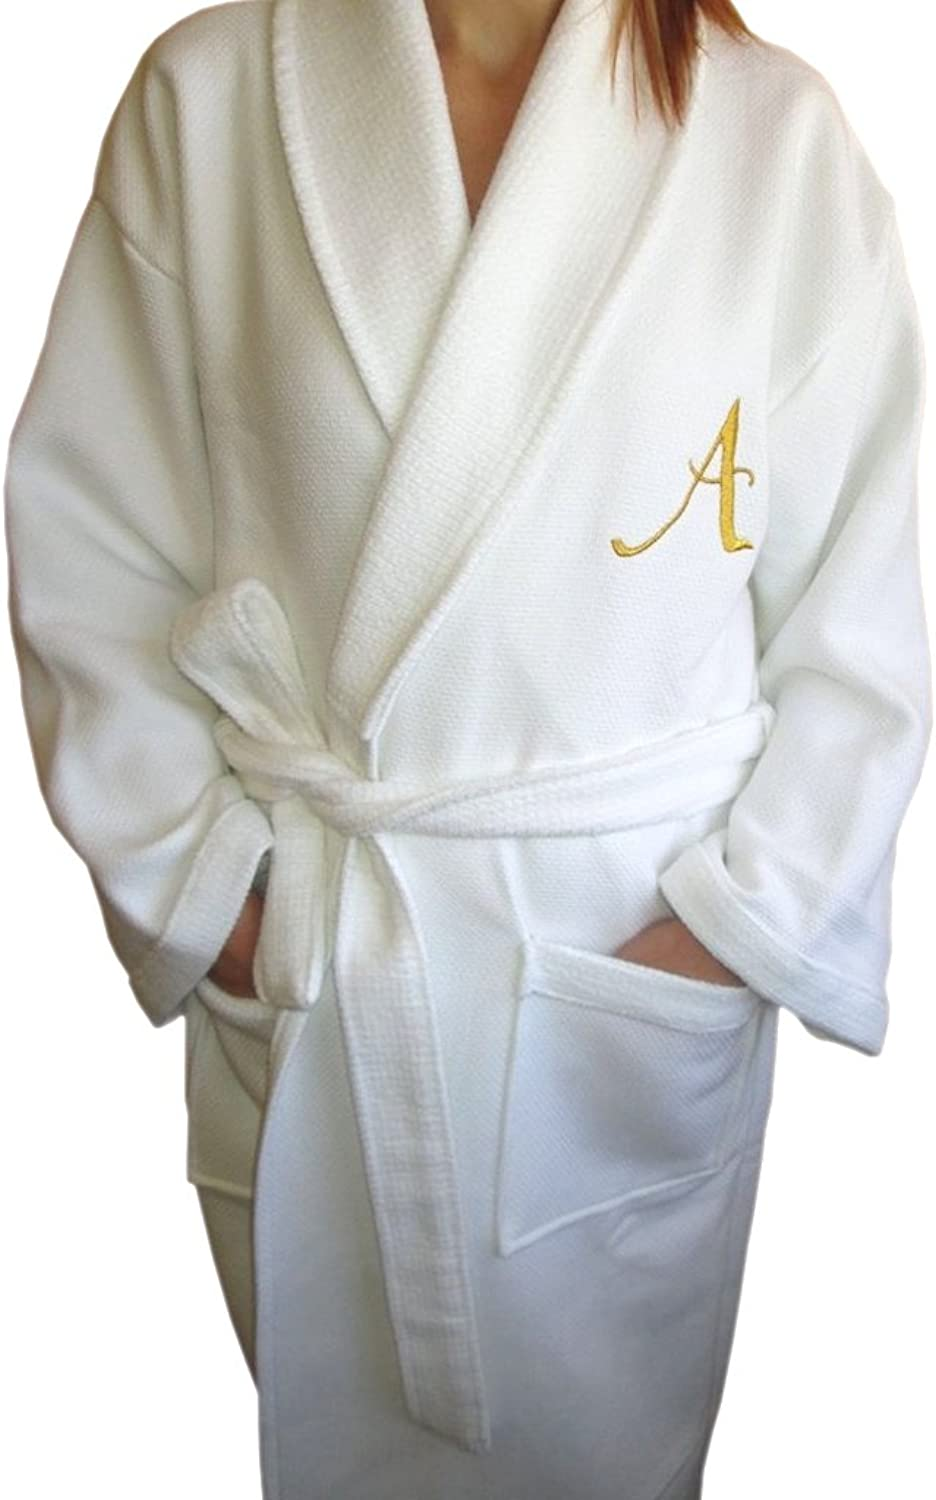 BgEurope Hotel Edition White Waffle Terry Lady Bathrobe with Personalized gold Letter (XL)